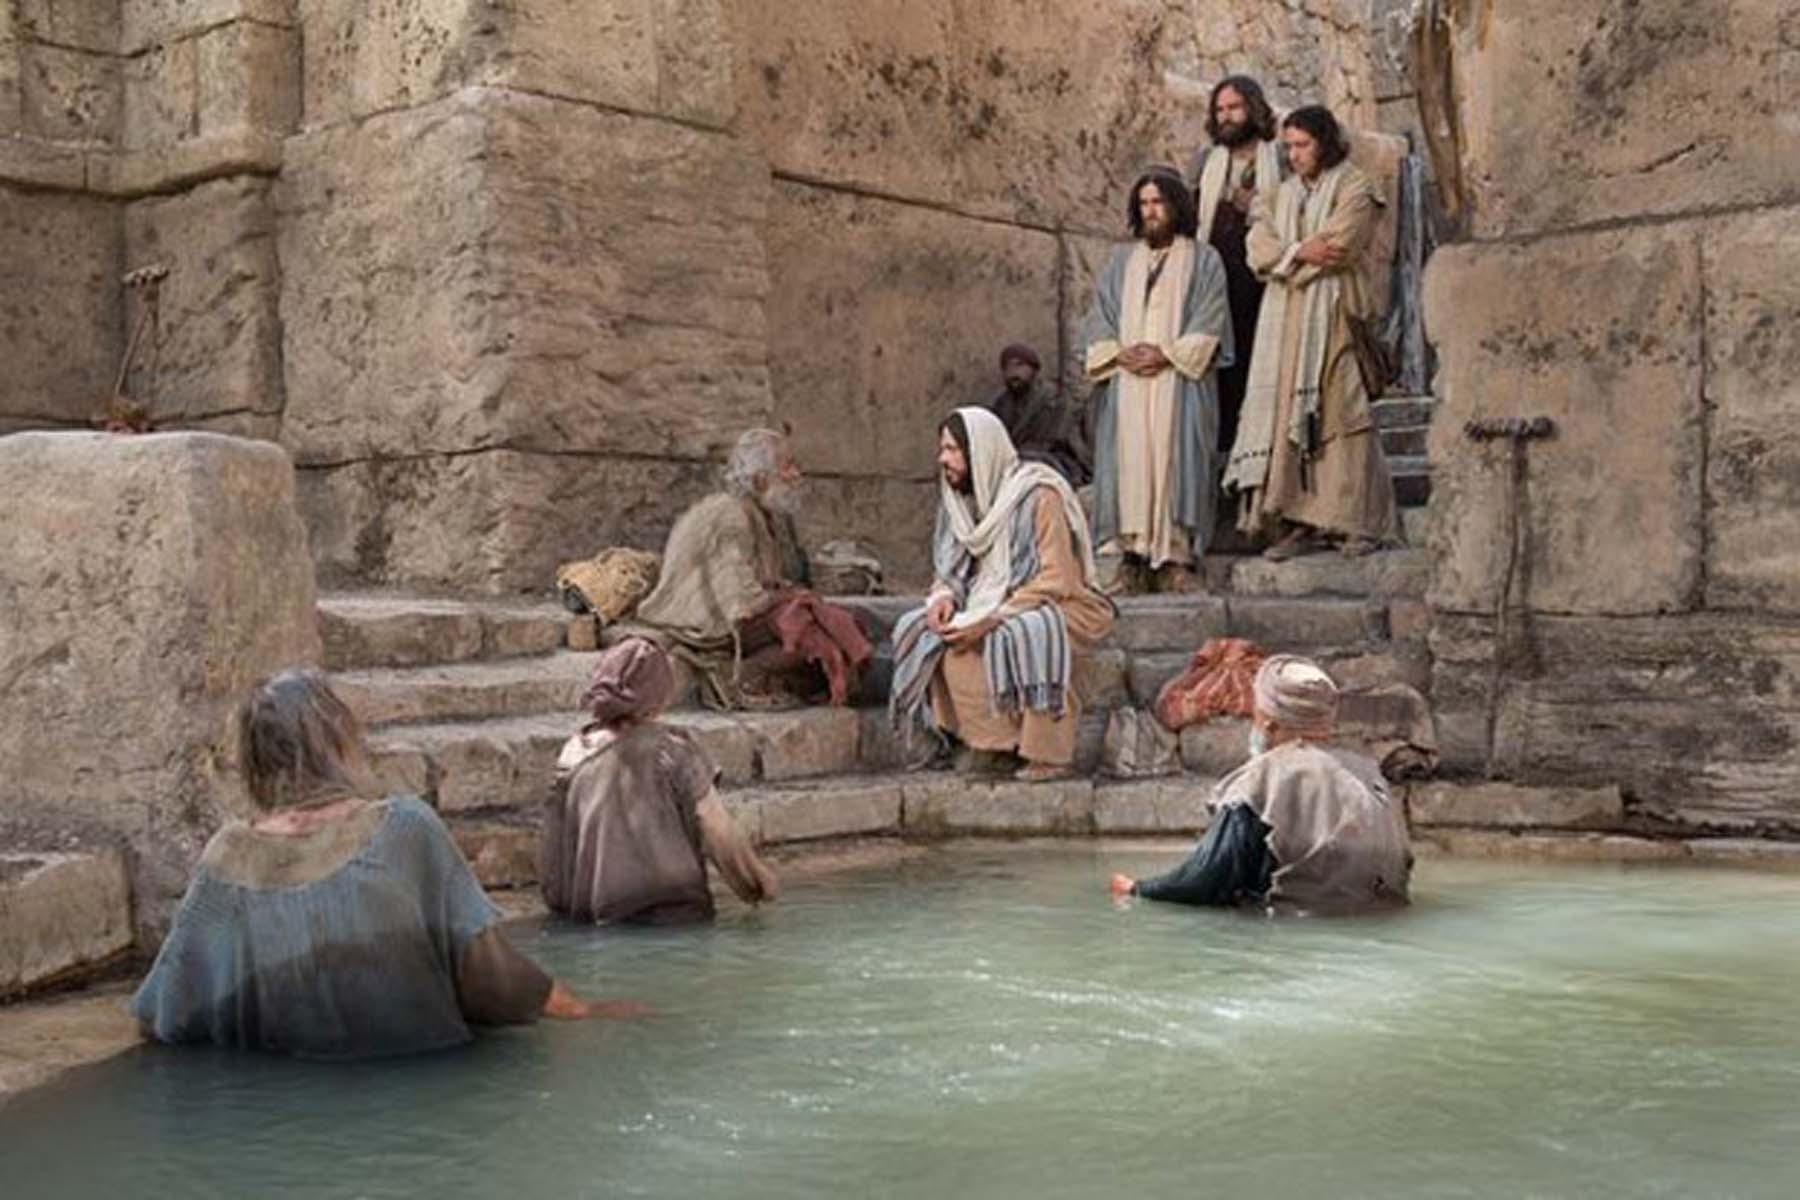 Miraculous catch of fish by jesus christ - 1 6